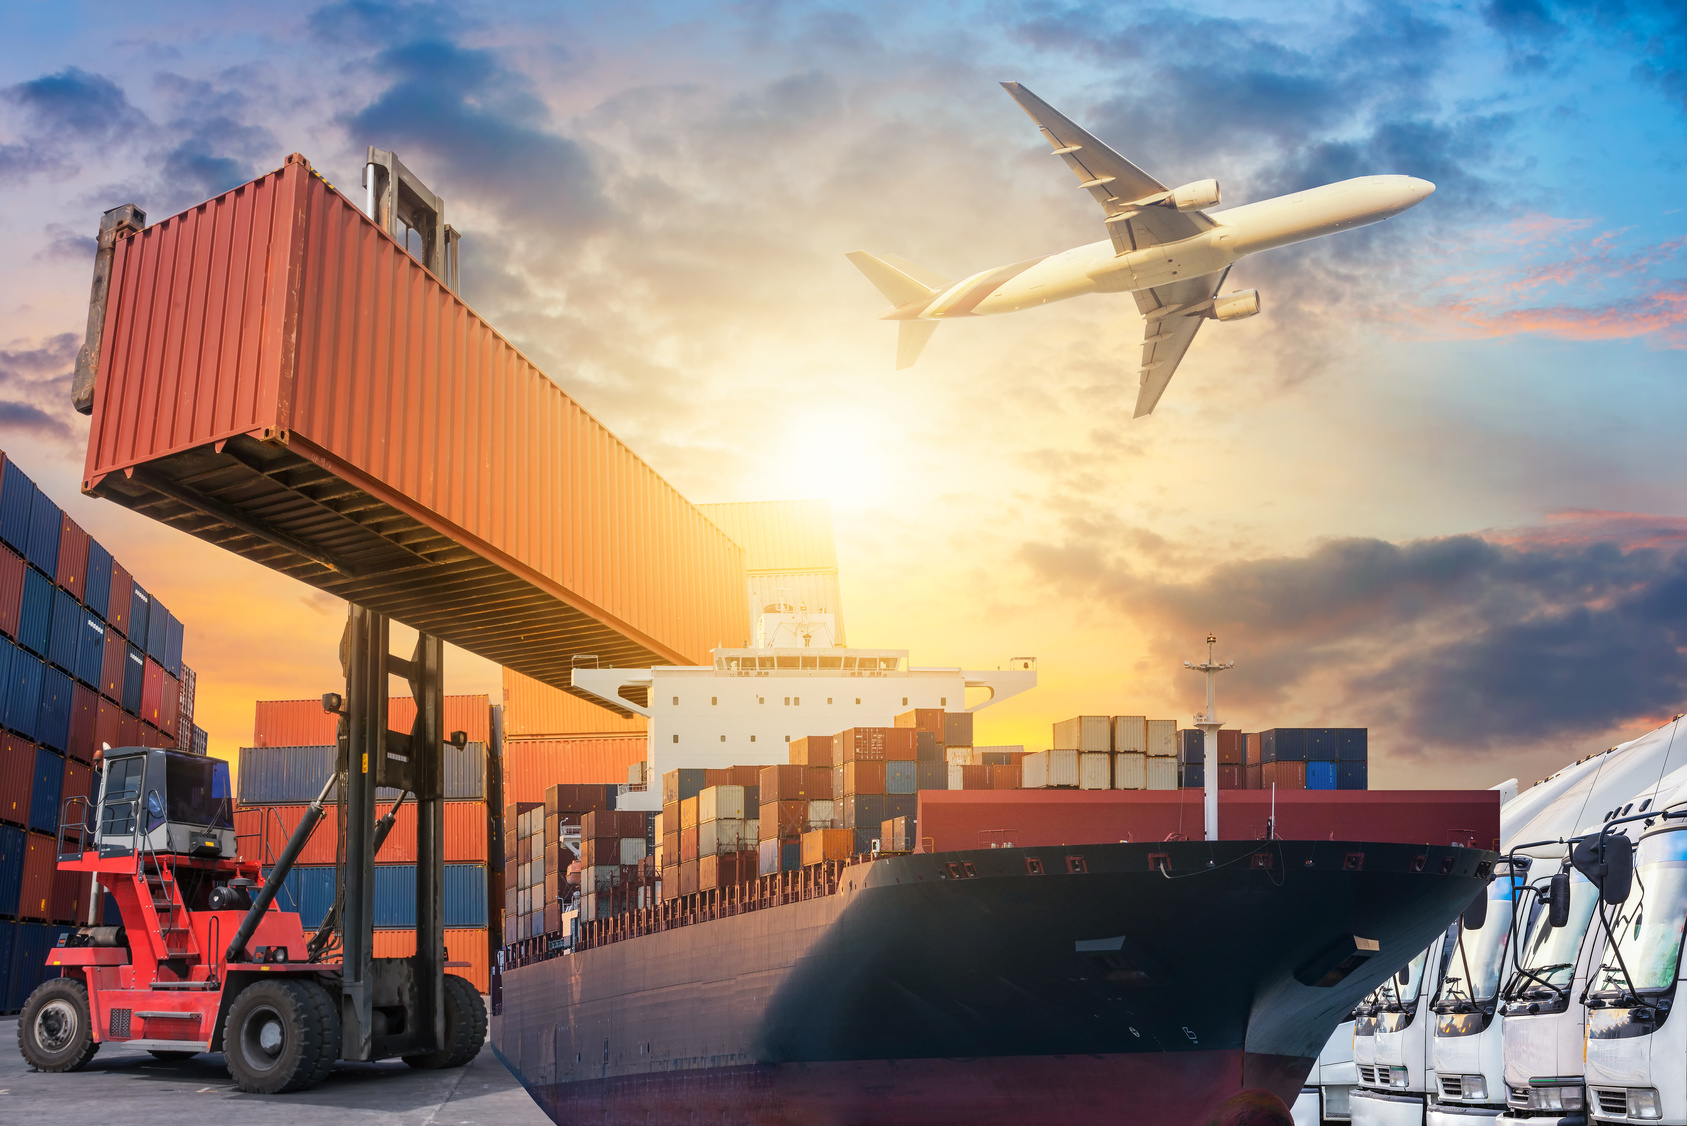 S2M Freight Services Pte Ltd provide international air and sea freight forwarding and trucking logistics